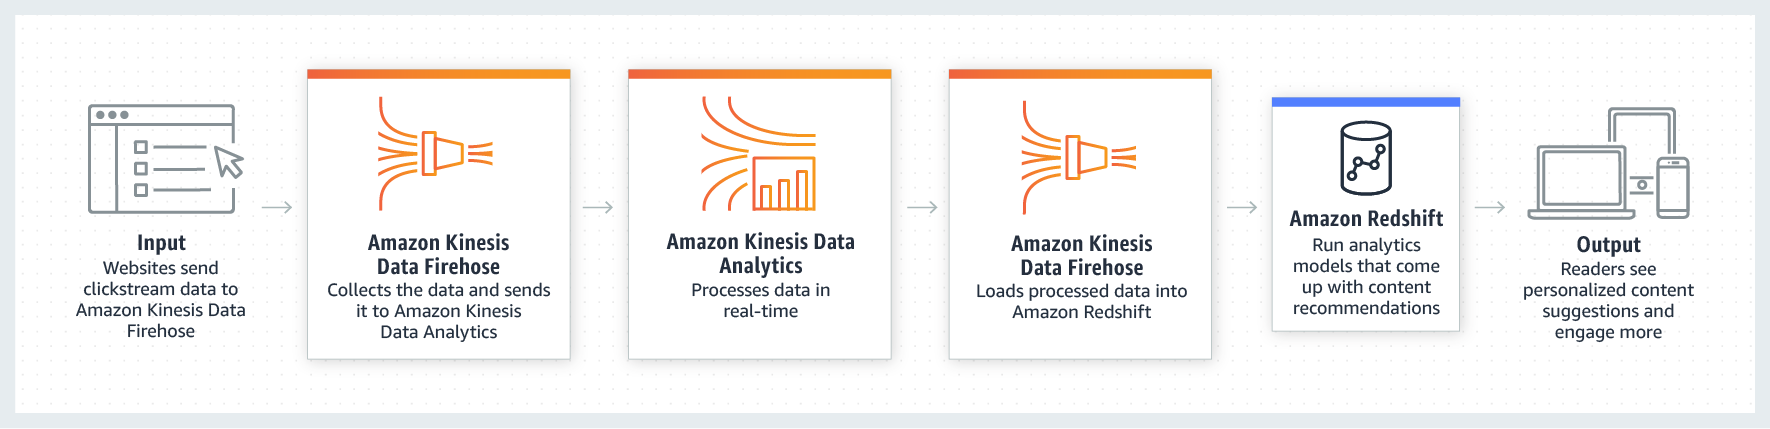 product-page-diagram_Amazon-Kinesis_Evolve-from-batch-to-real-time-Analytics